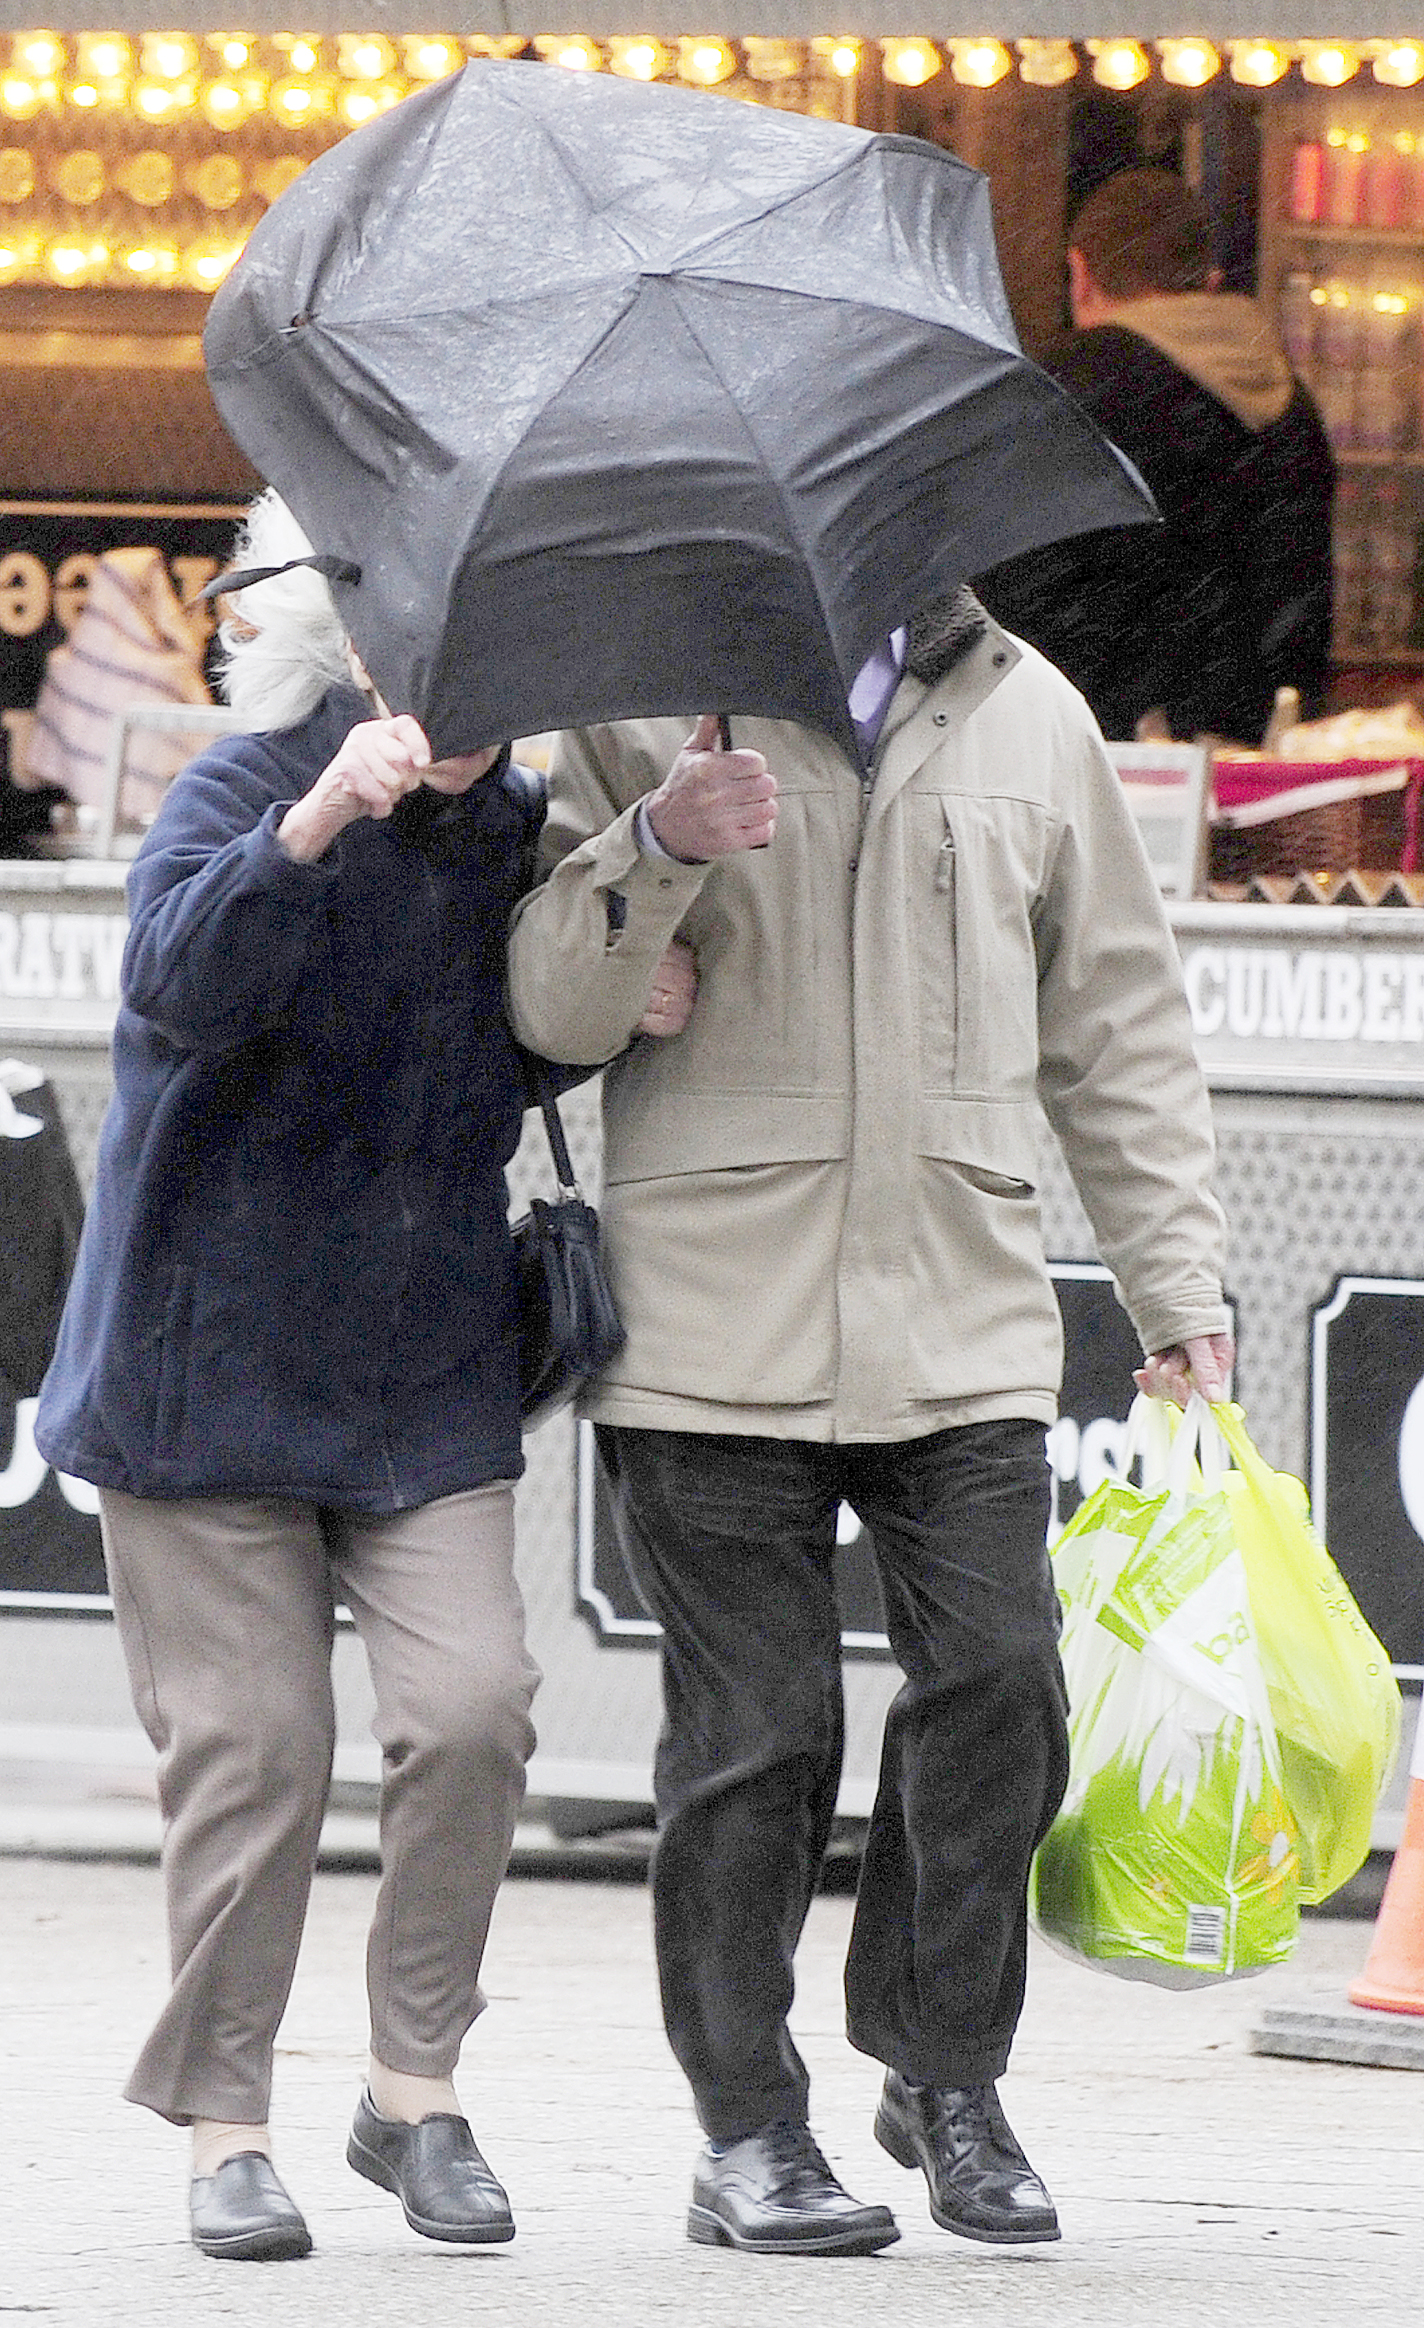 Severe weather alert as Met Office forecasts 100mph winds across north west tonight